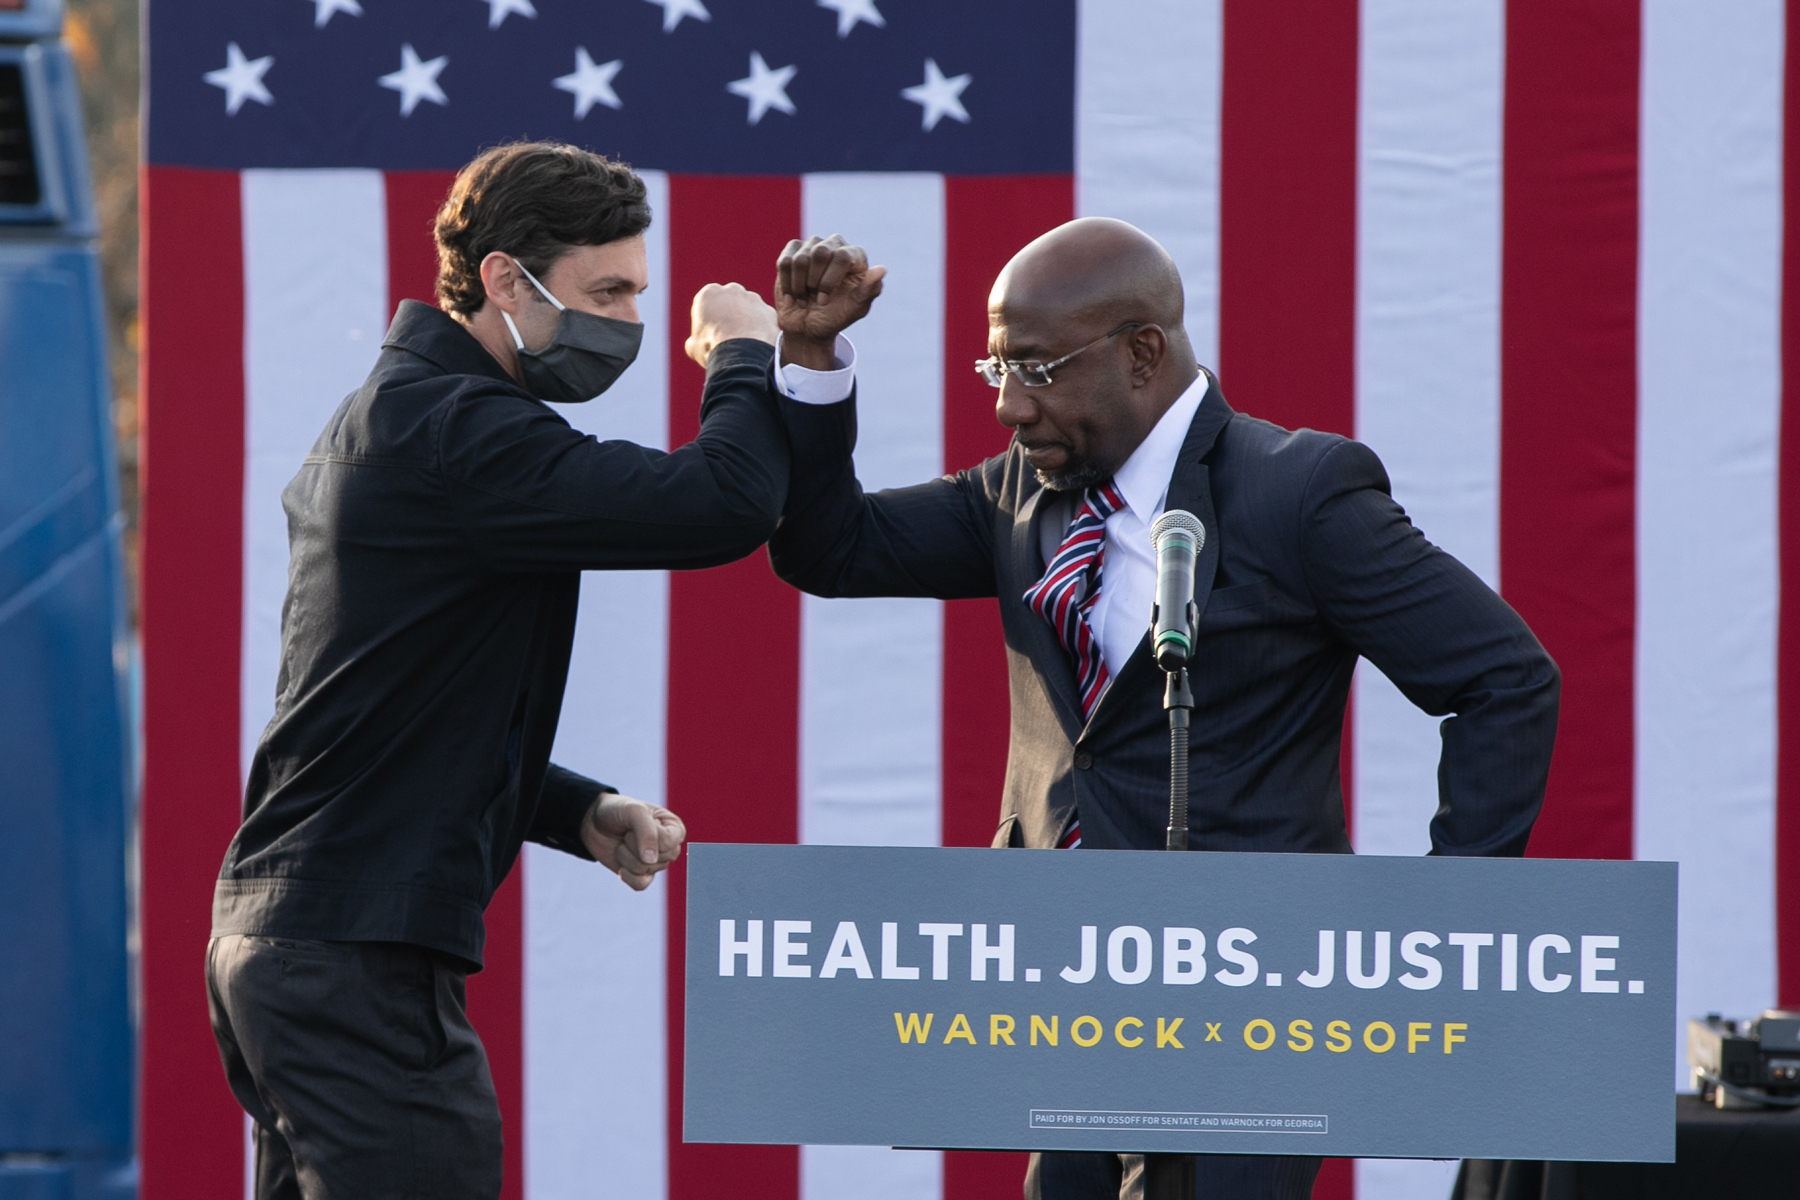 """STONECREST, GA - DECEMBER 28: Georgia Democratic Senate candidates Raphael Warnock (R) and Jon Ossoff (L) bump elbows during a """"It's Time to Vote"""" drive-in rally on December 28, 2020 in Stonecrest, Georgia. With a week until the January 5th runoff election that will determine control of the Senate, candidates continue to campaign throughout Georgia. (Photo by Jessica McGowan/Getty Images)"""